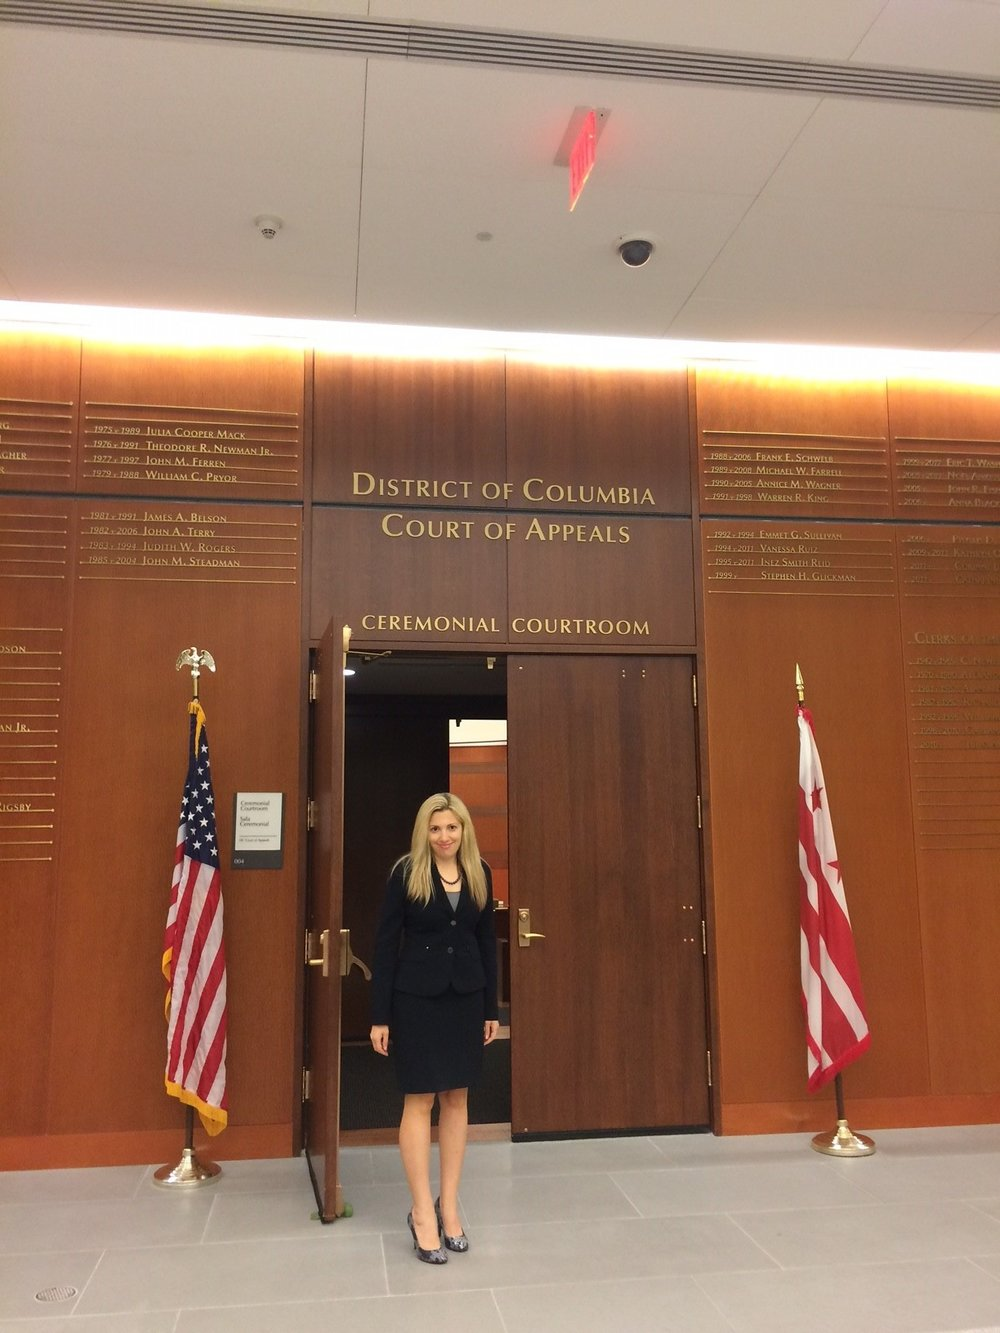 October 2017: Jillian A. Centanni, Esq. is pleased to announce that she has been admitted to the Bar for the District of Columbia.  Her swearing in ceremony was Oct. 2, 2017 in Washington, D.C. at the District of Columbia Court of Appeals' Ceremonial Courtroom. -